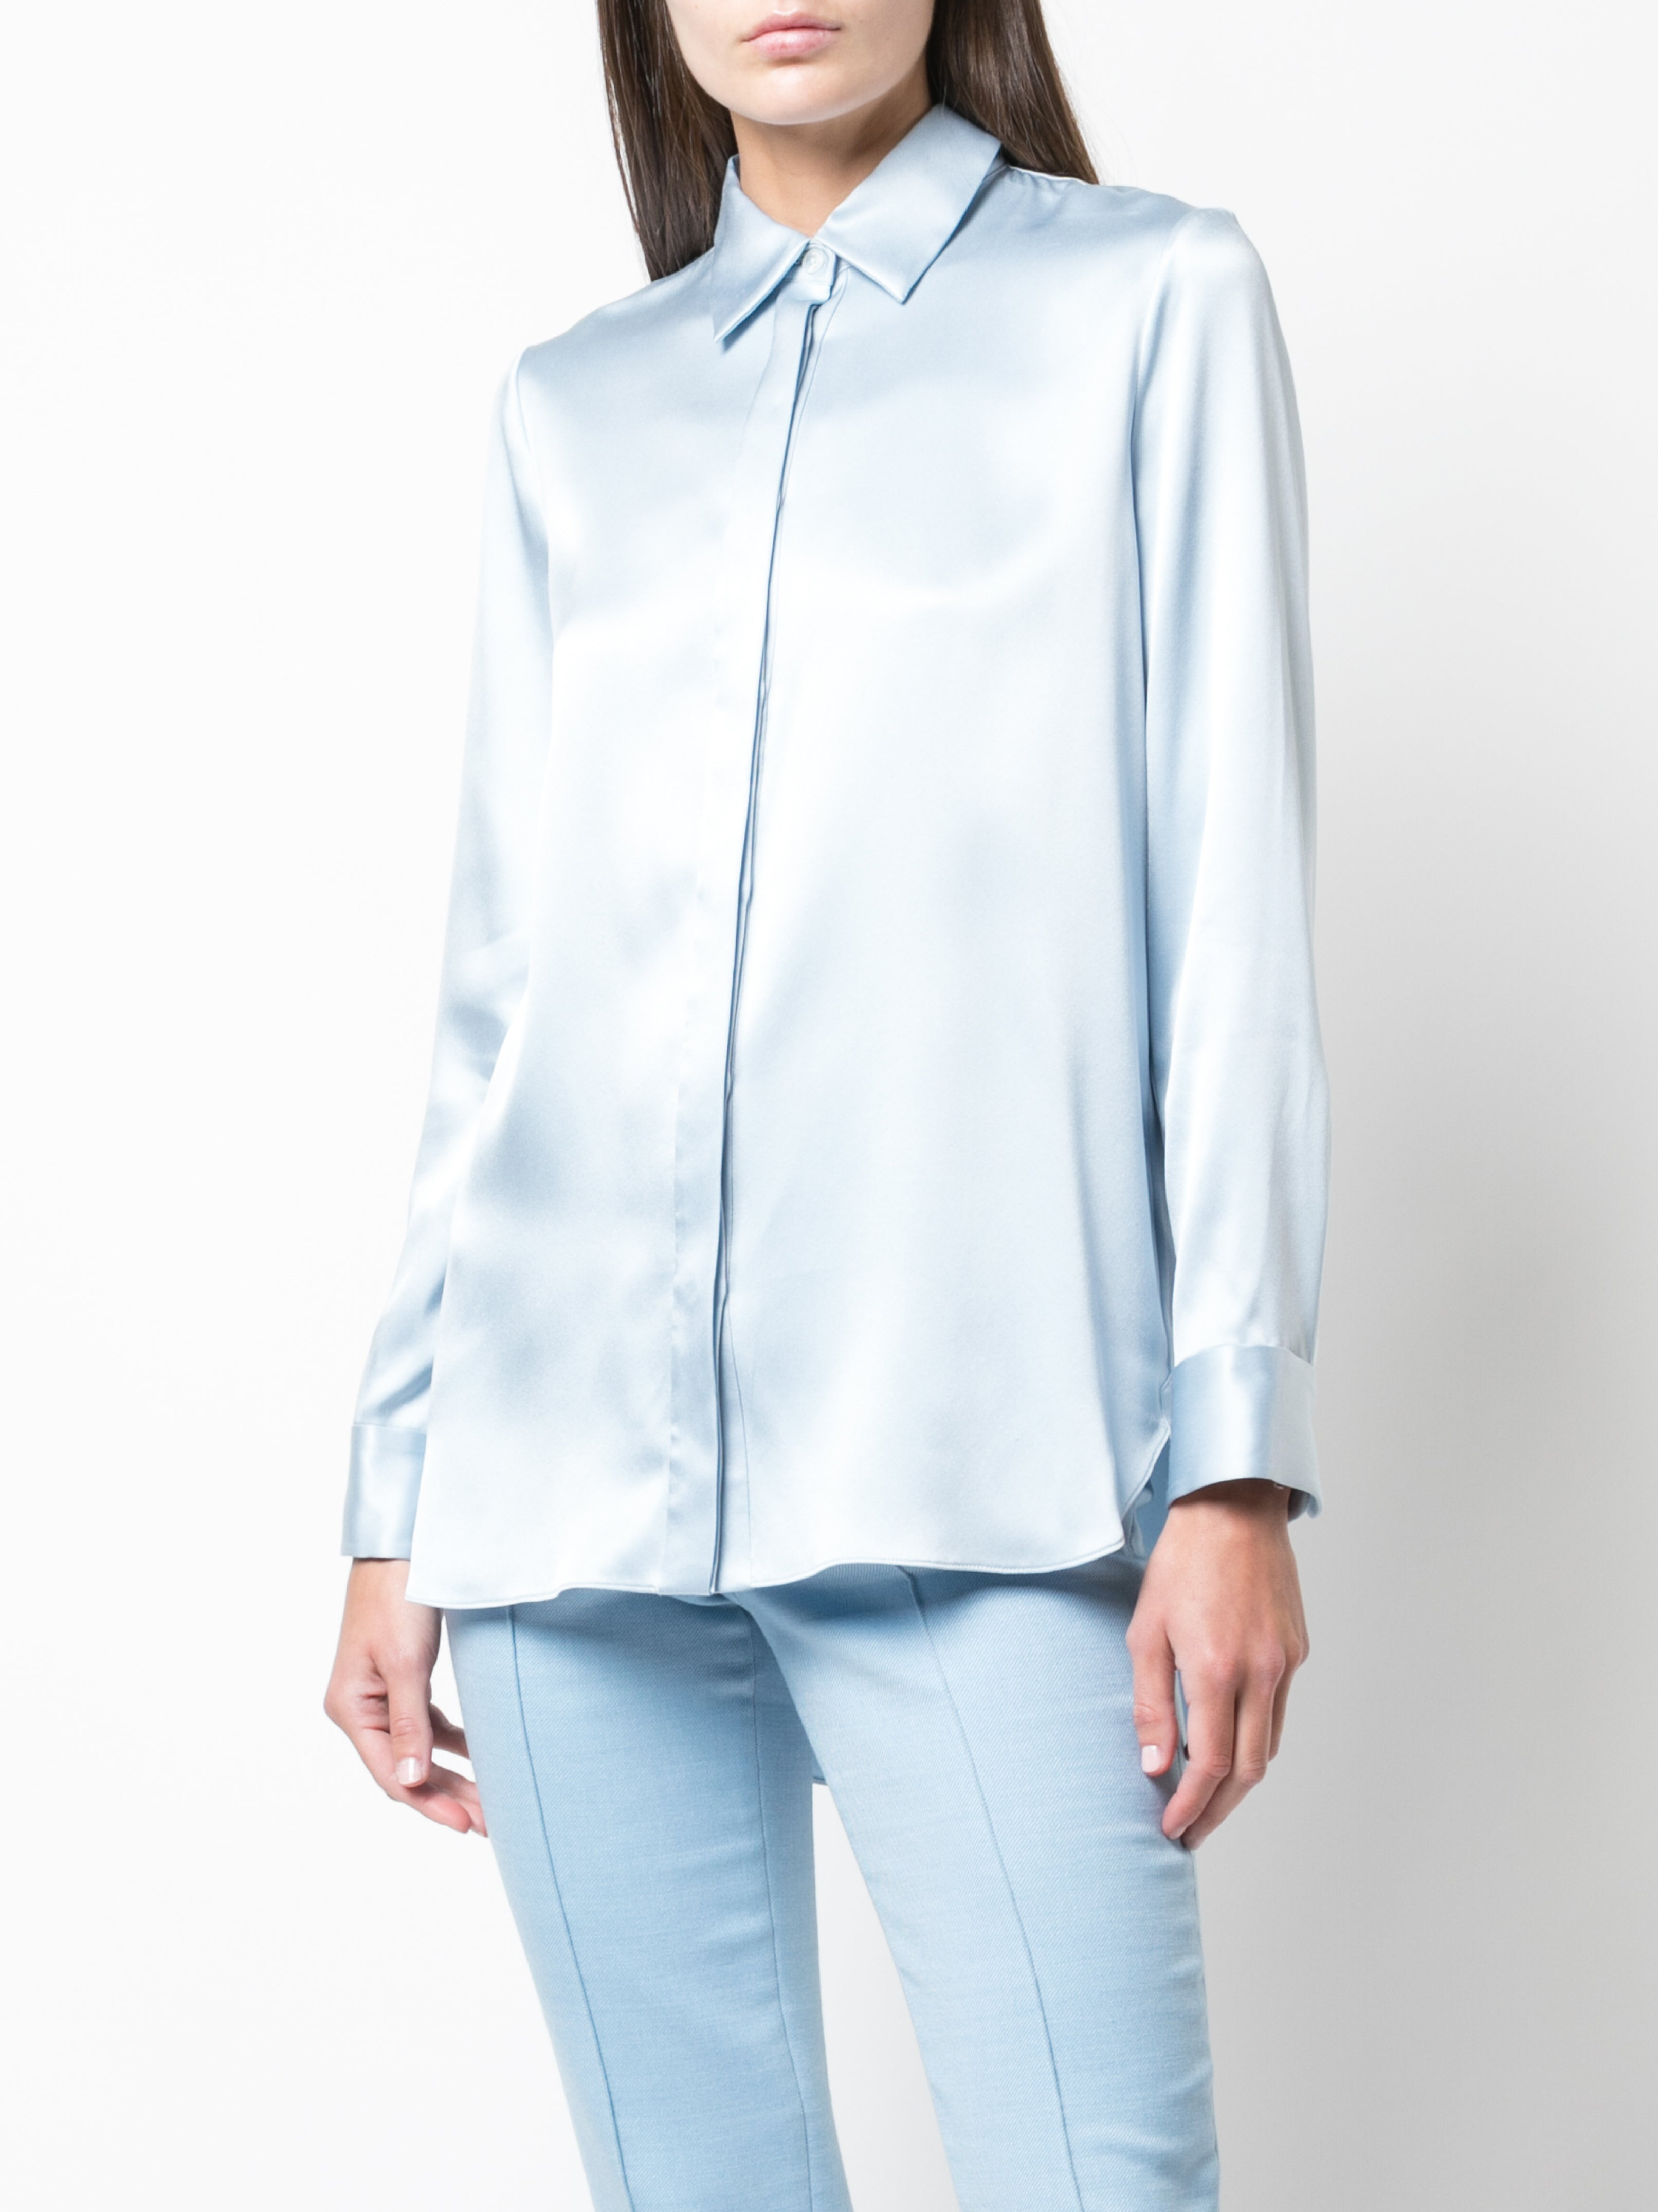 SILK CHARMEUSE MENSWEAR SHIRT